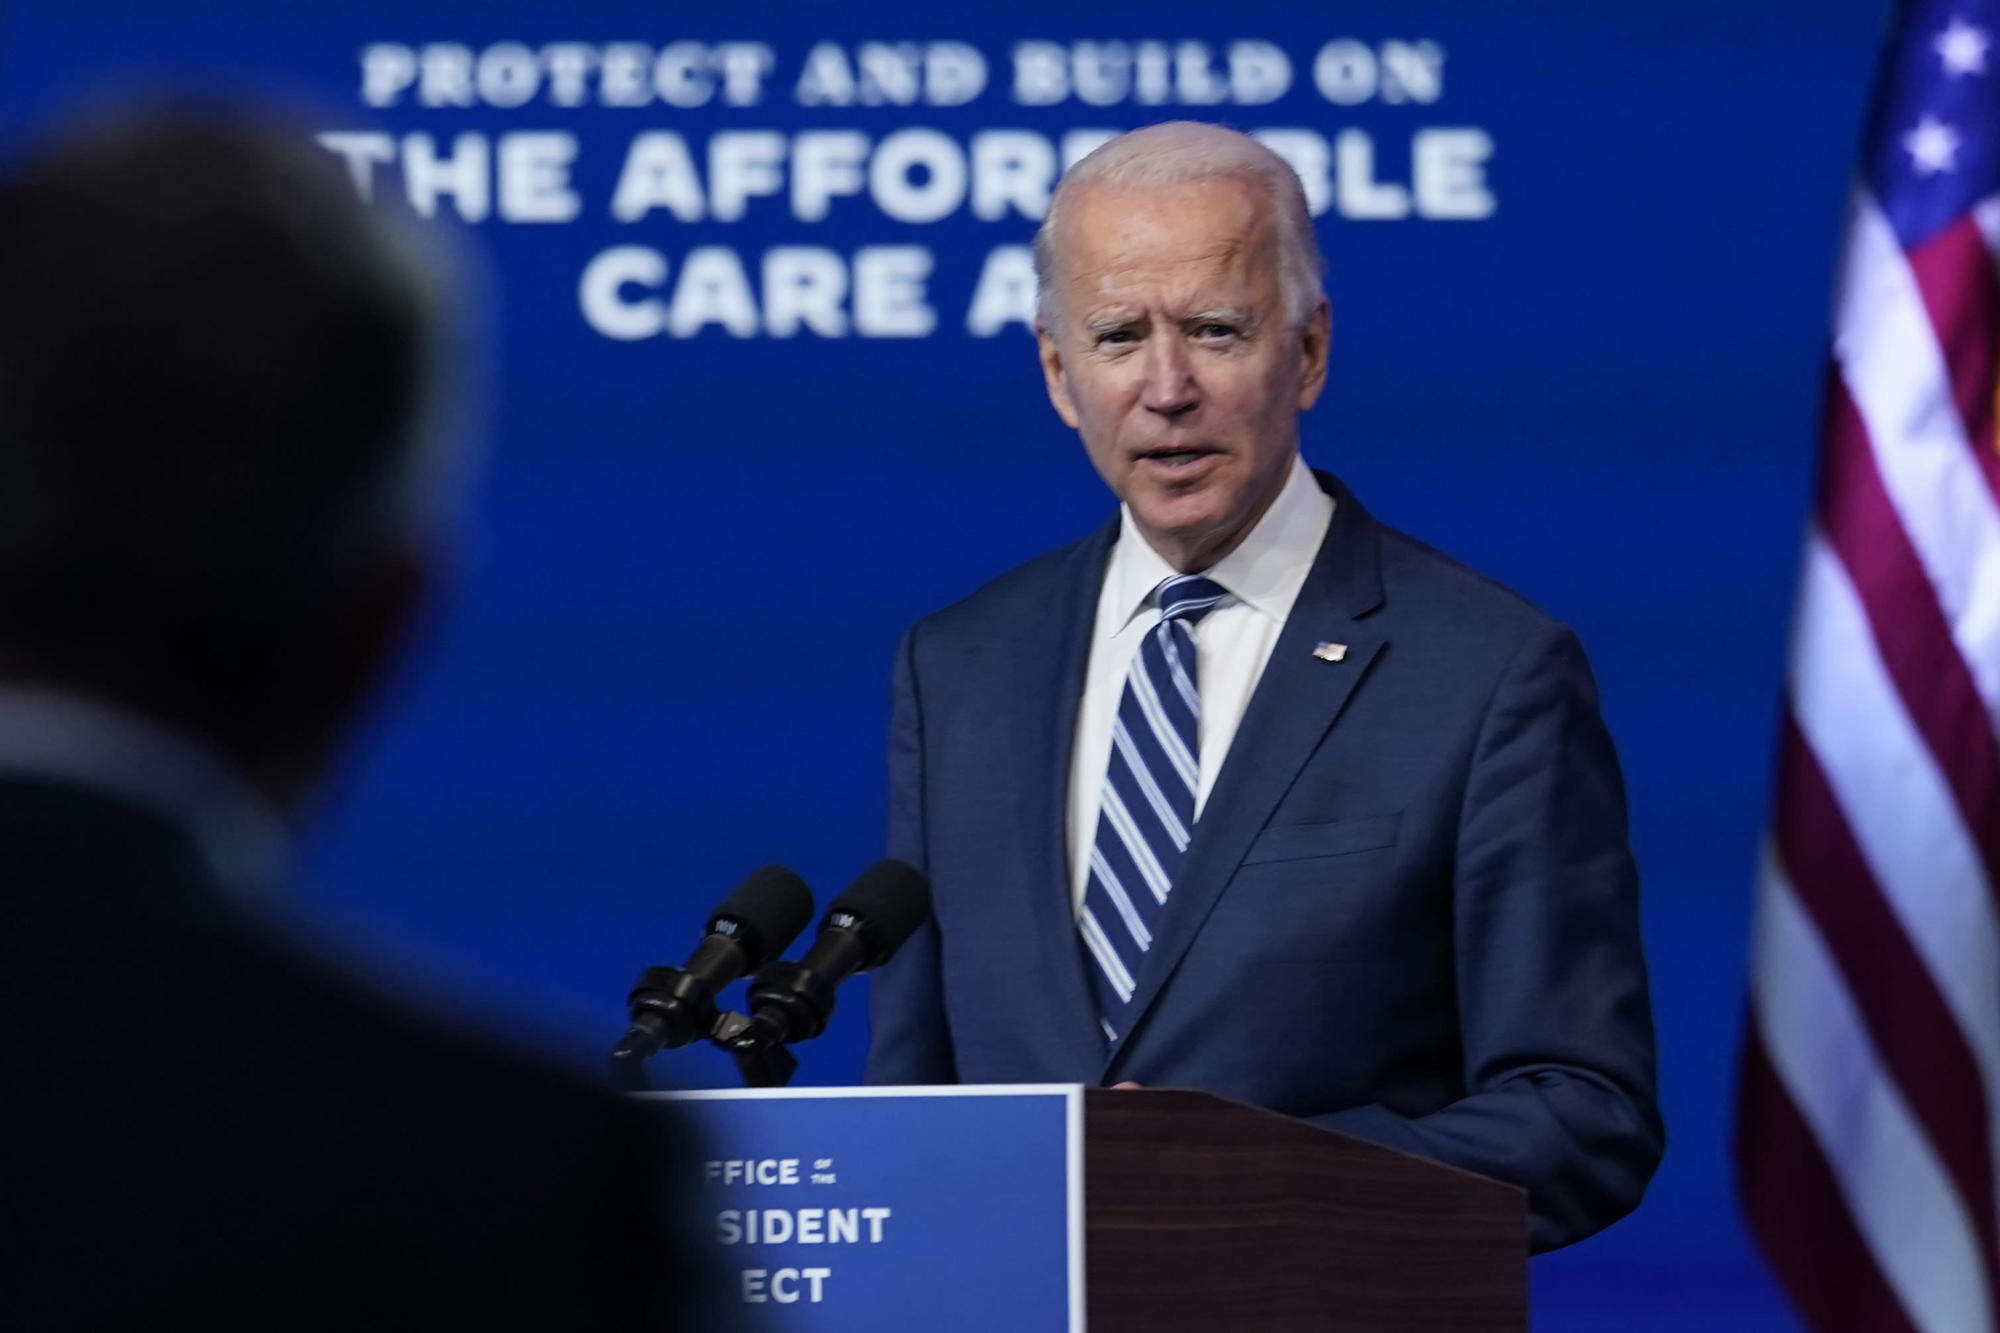 Election 2020 Today: Smooth election, Biden ready to work